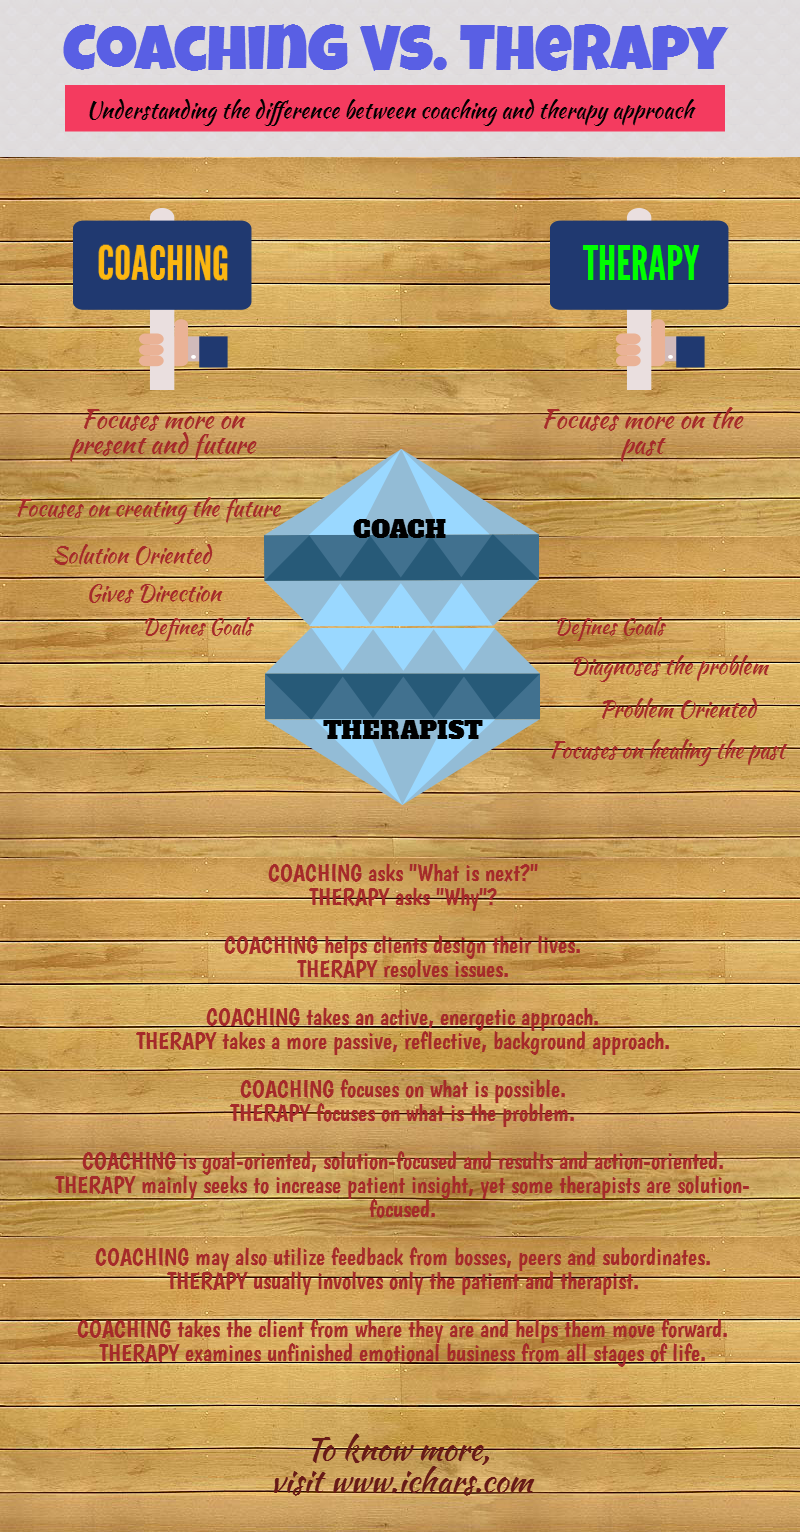 infographic - Understanding the Difference between Coaching and Therapy